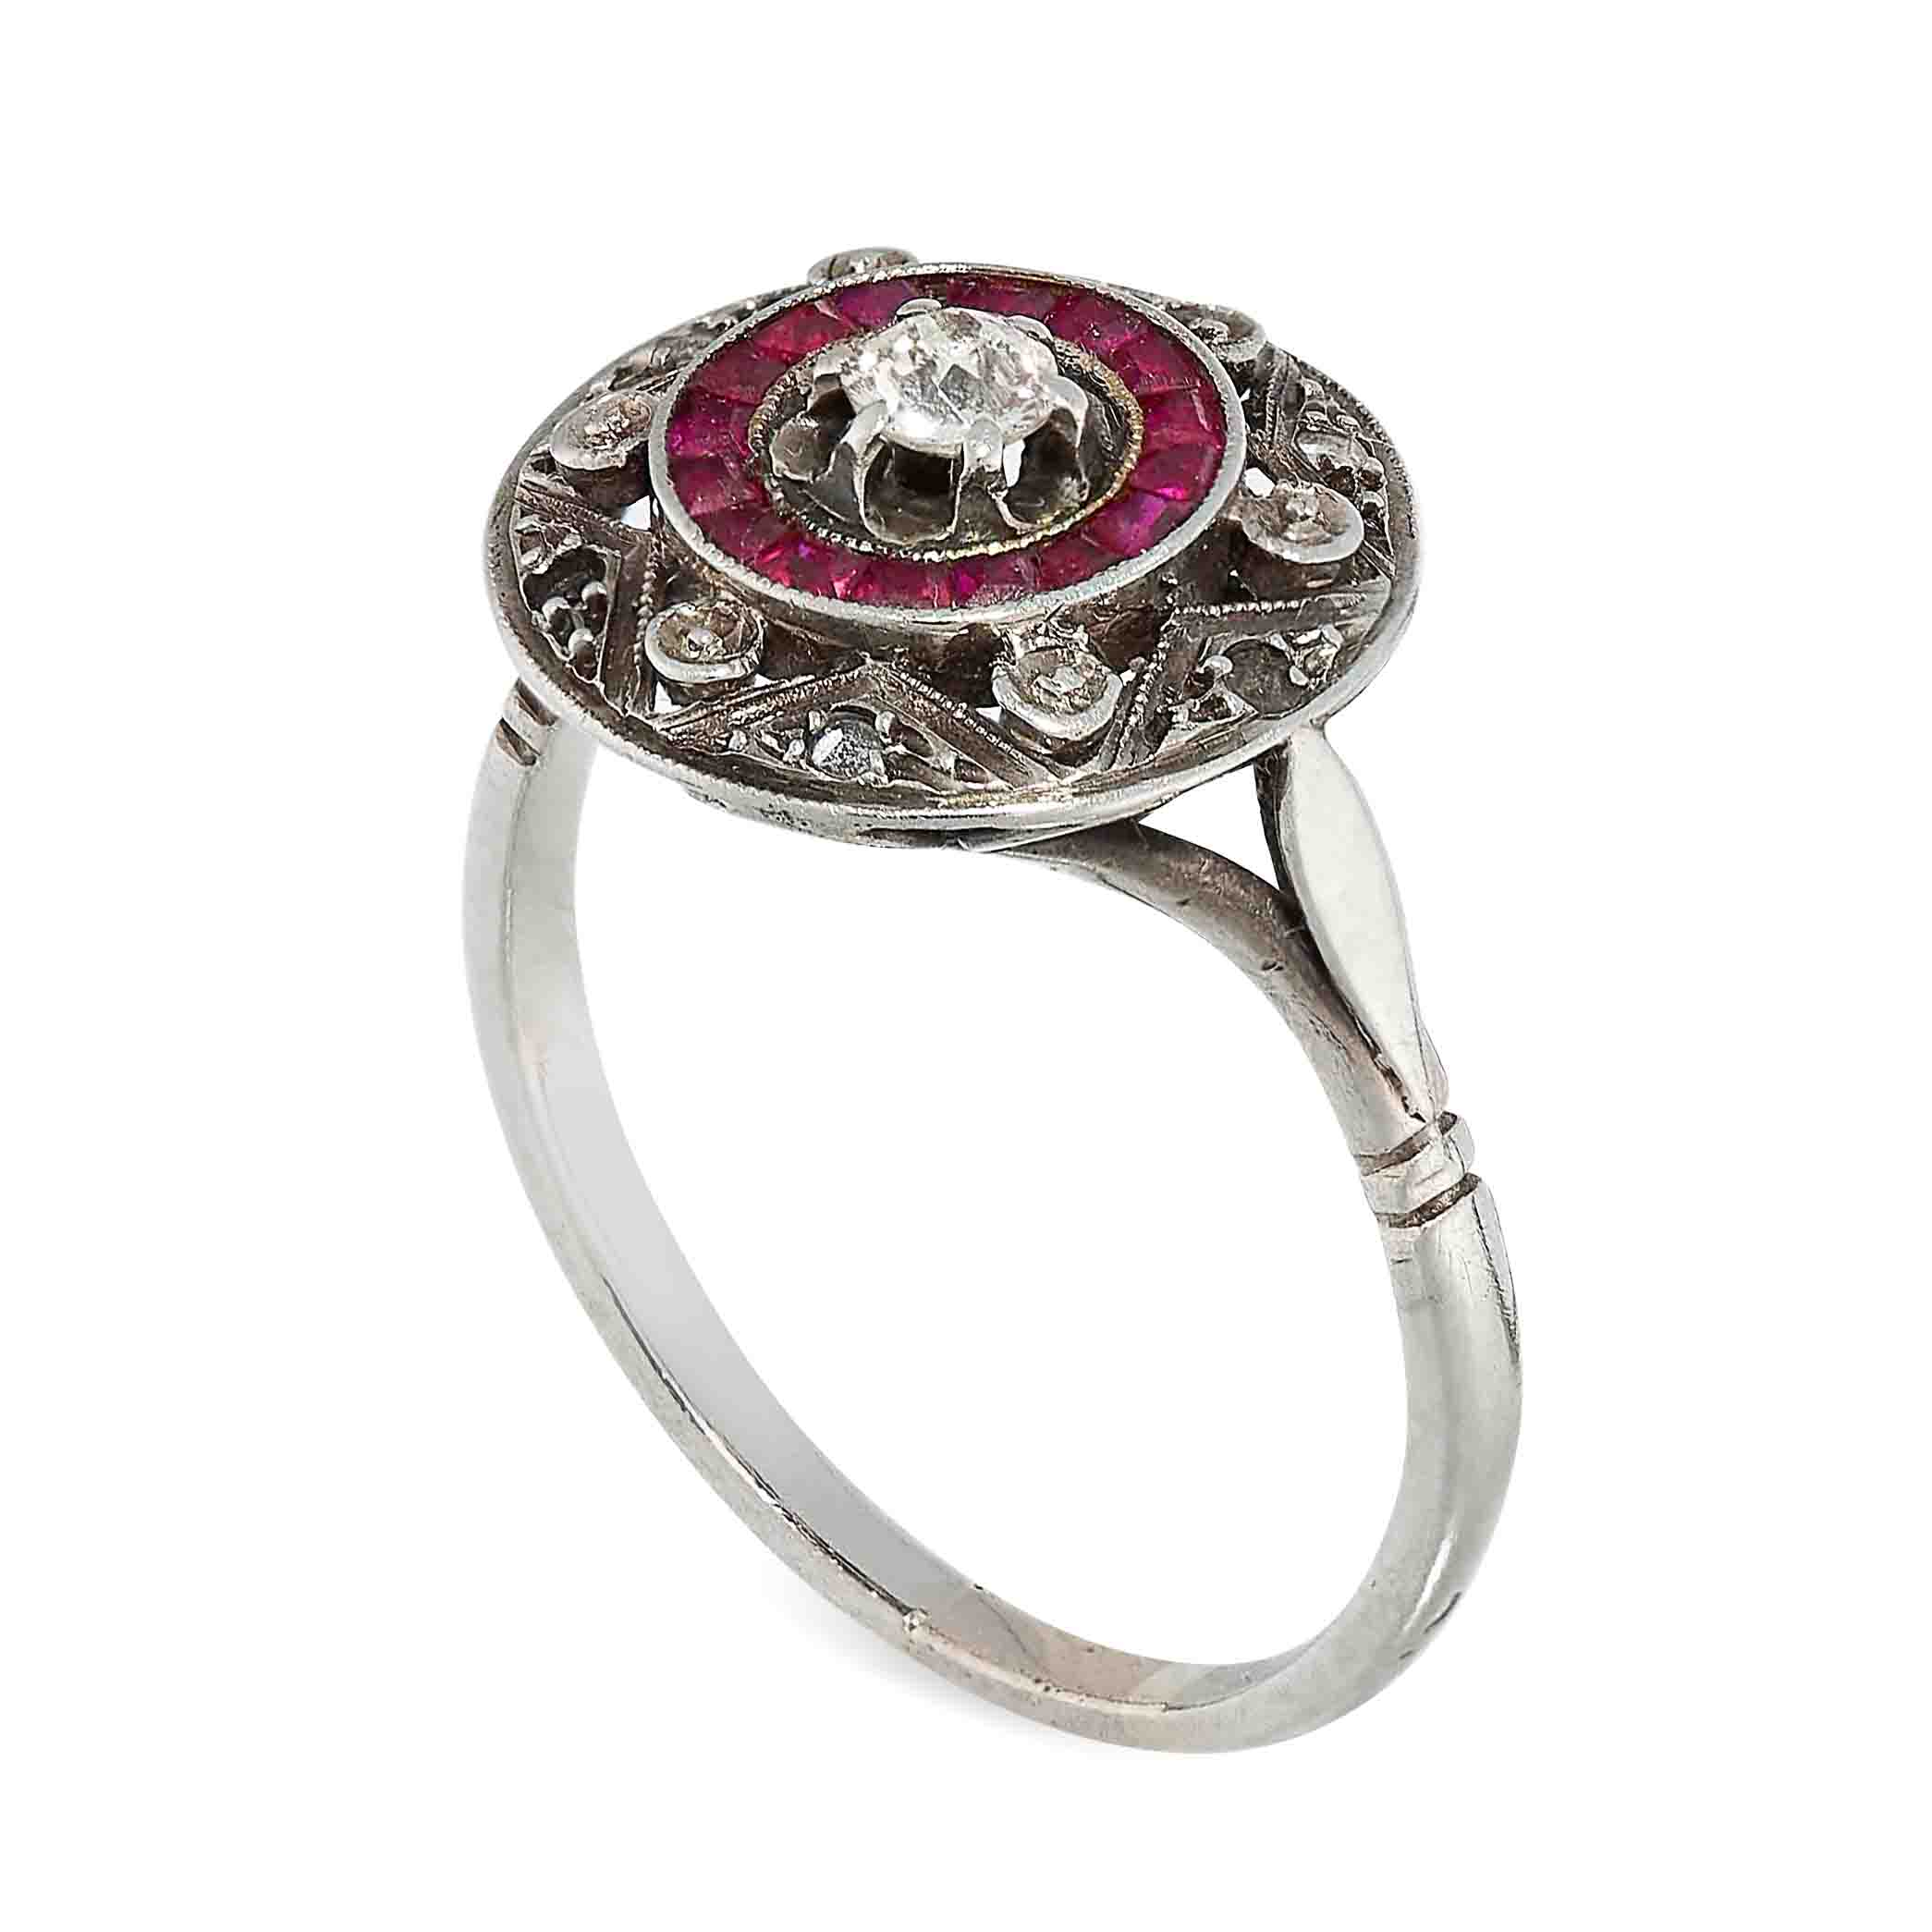 ART DECO RUBY AND DIAMOND TARGET RING the circular face is set with an old cut diamond in a border - Image 2 of 2